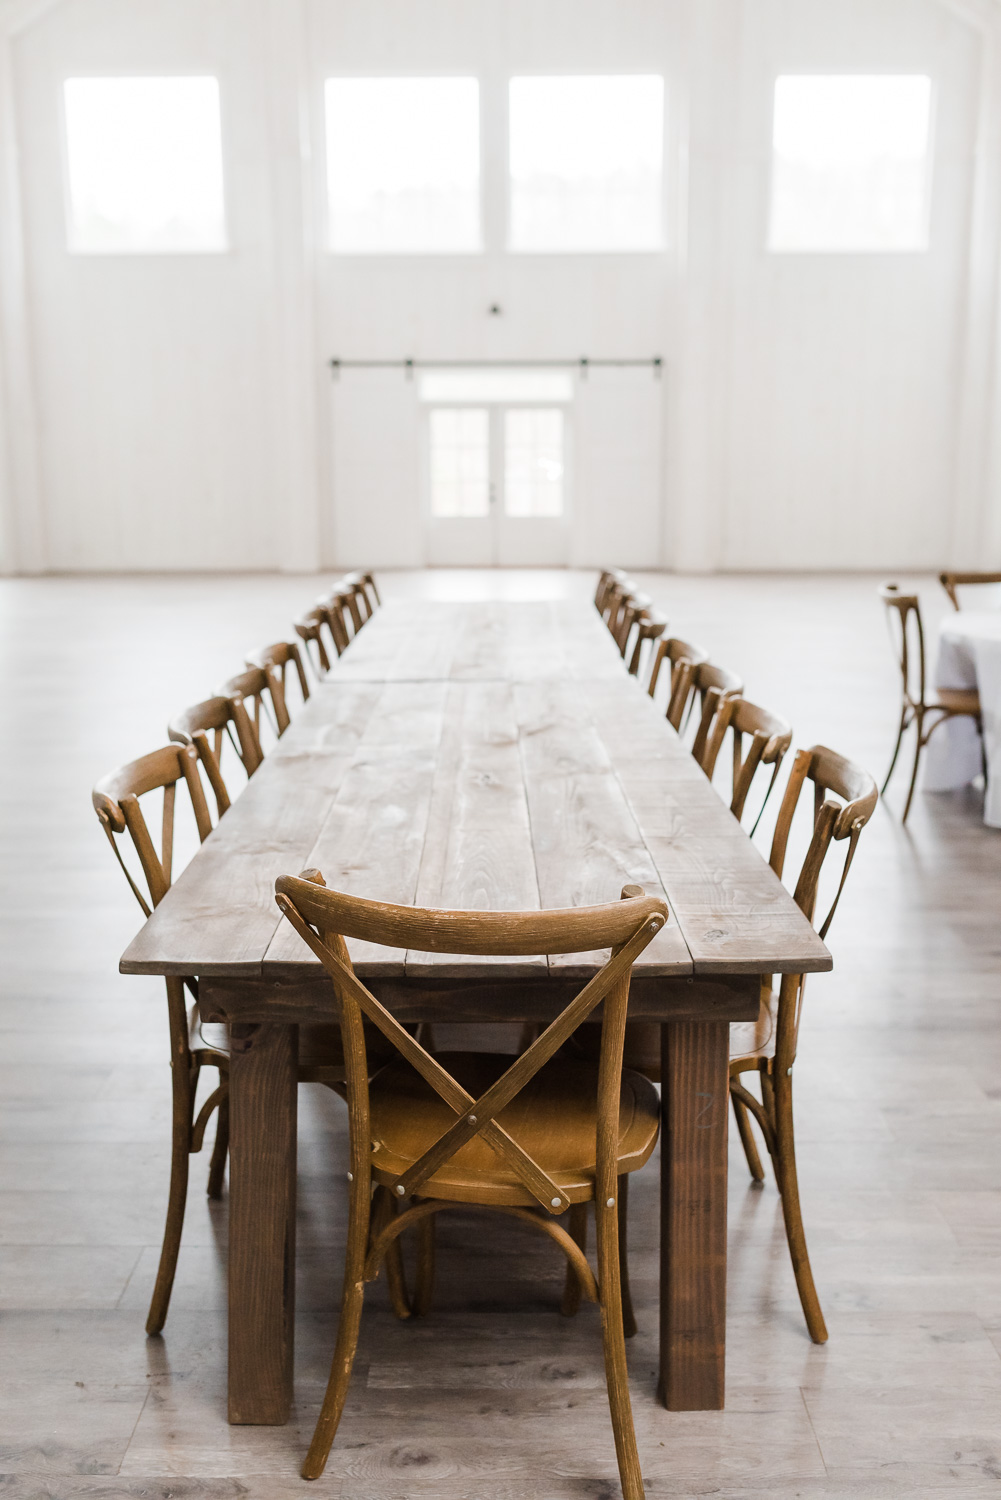 Cross backed chairs at wooden farm table in white room